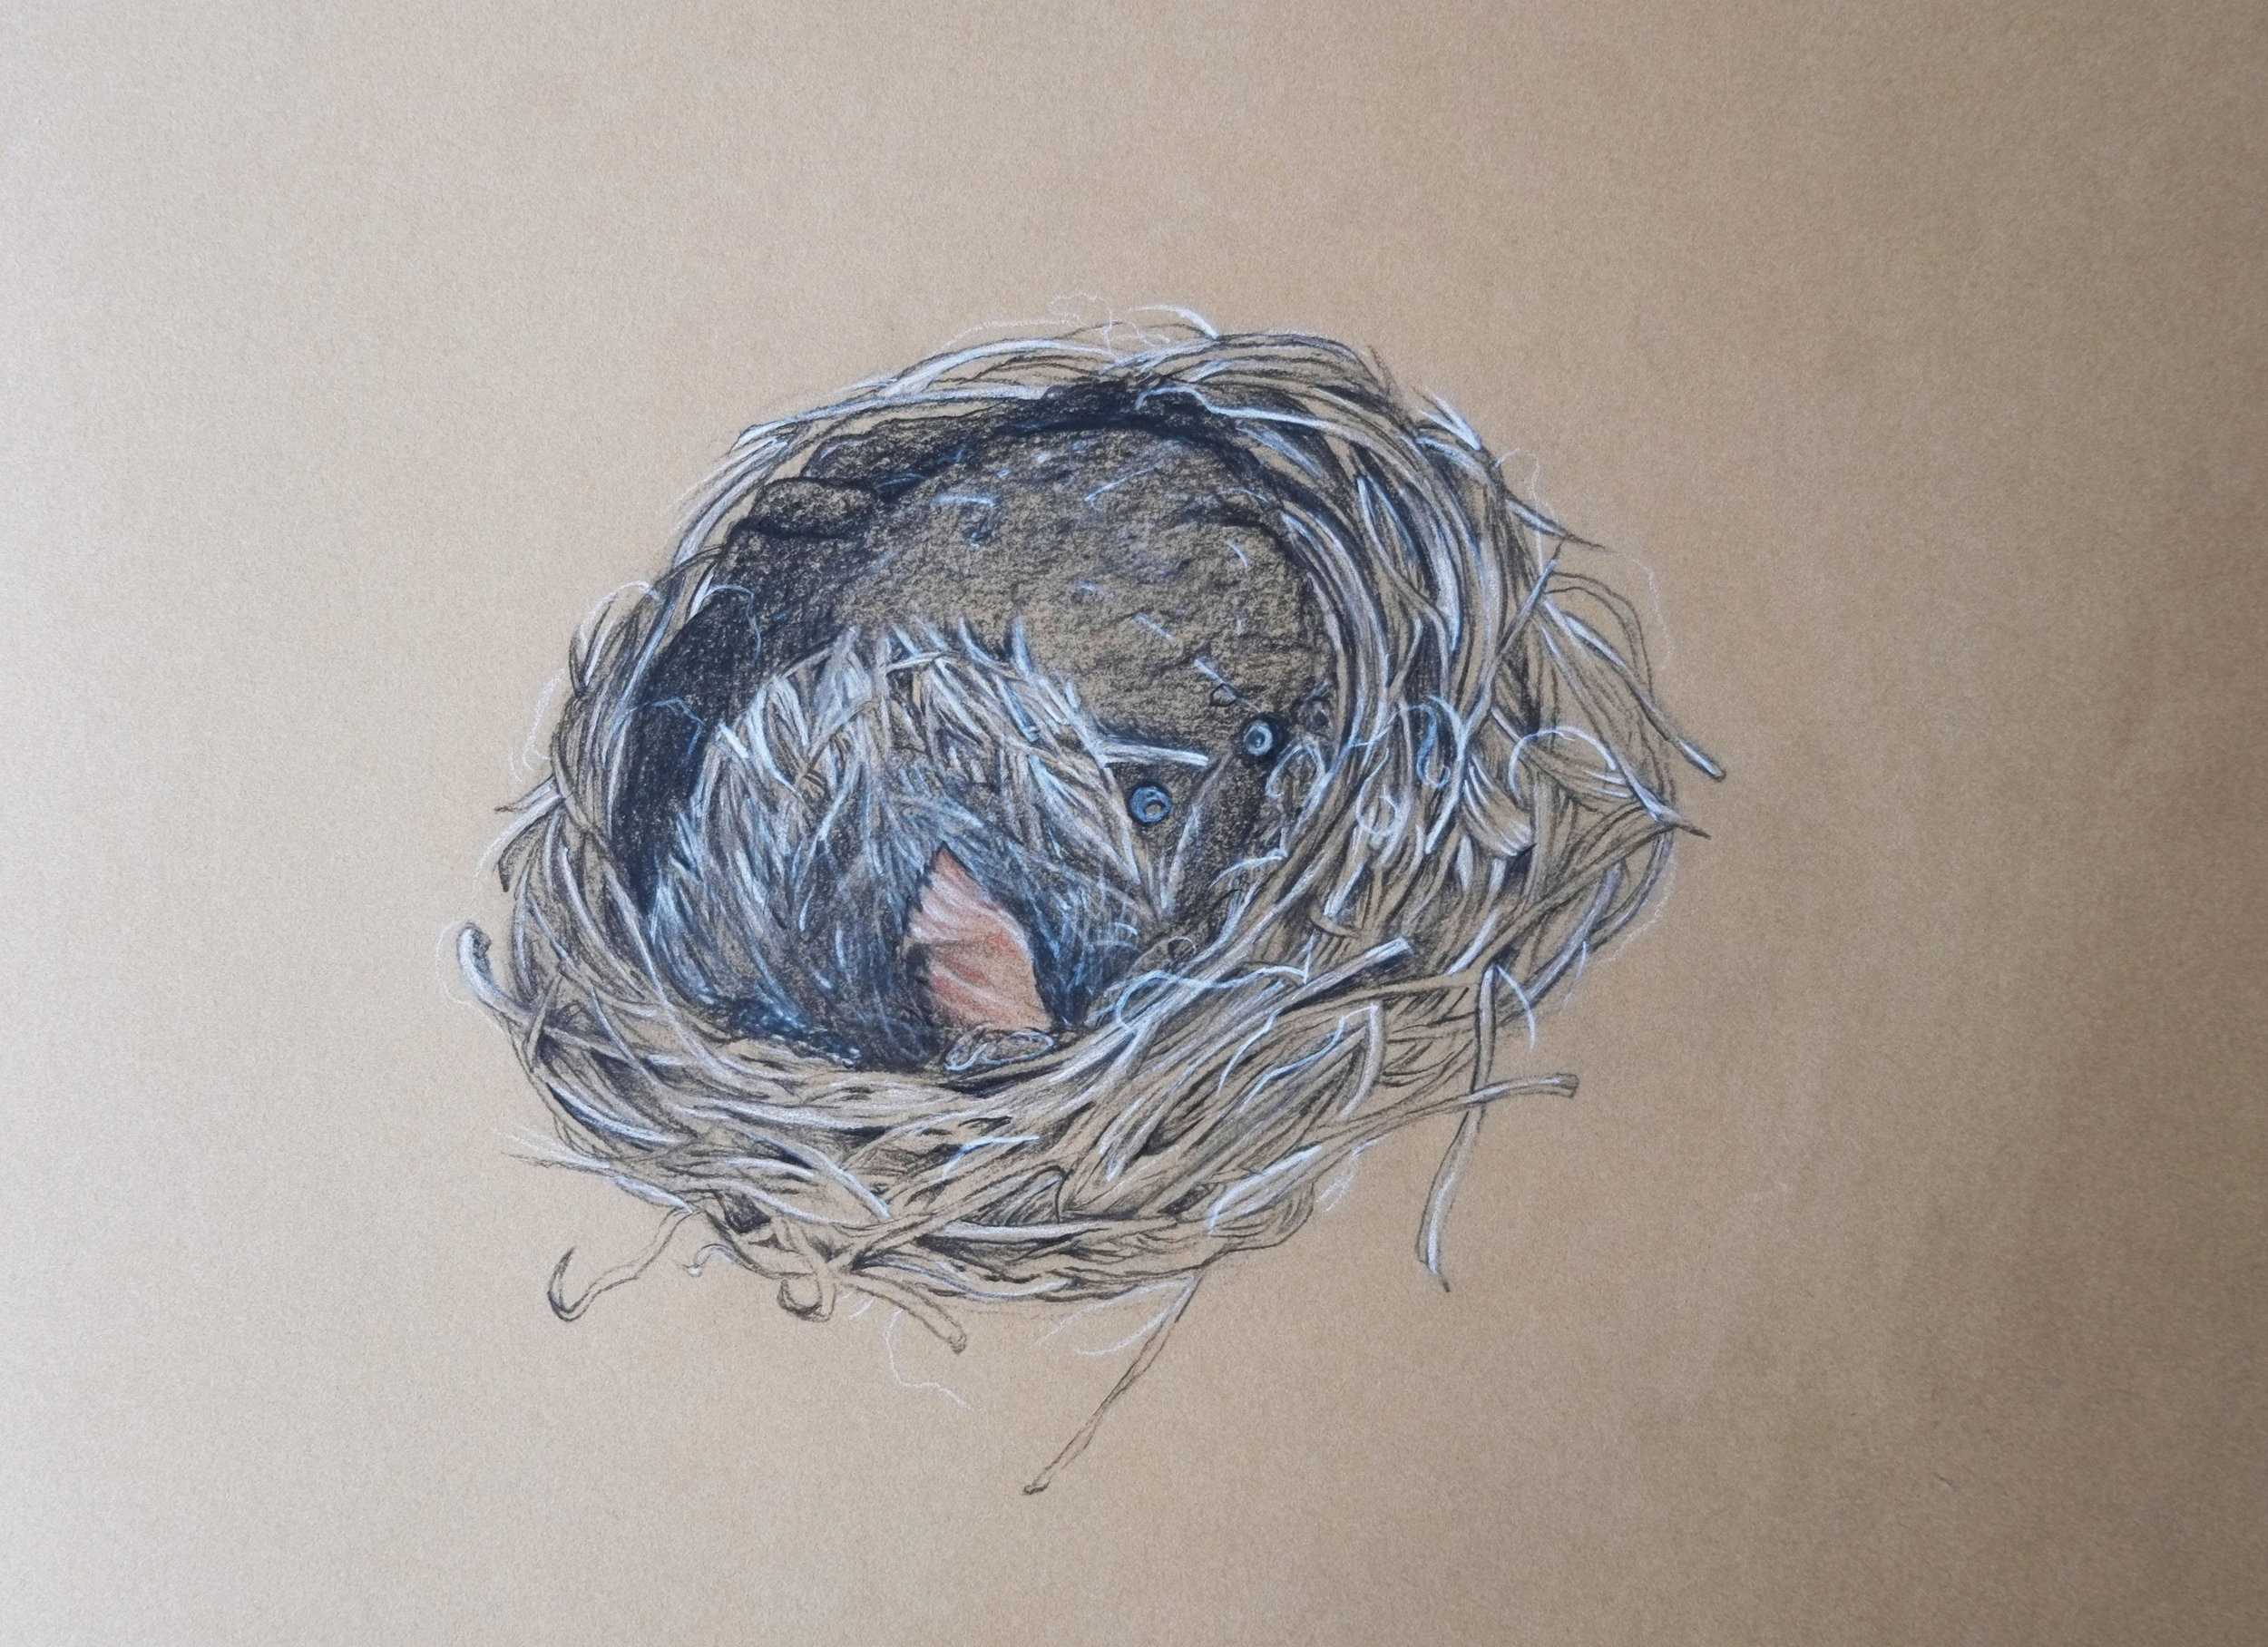 Cup nest drawing by Victoria. Charcoal and chalk on Kraft paper.